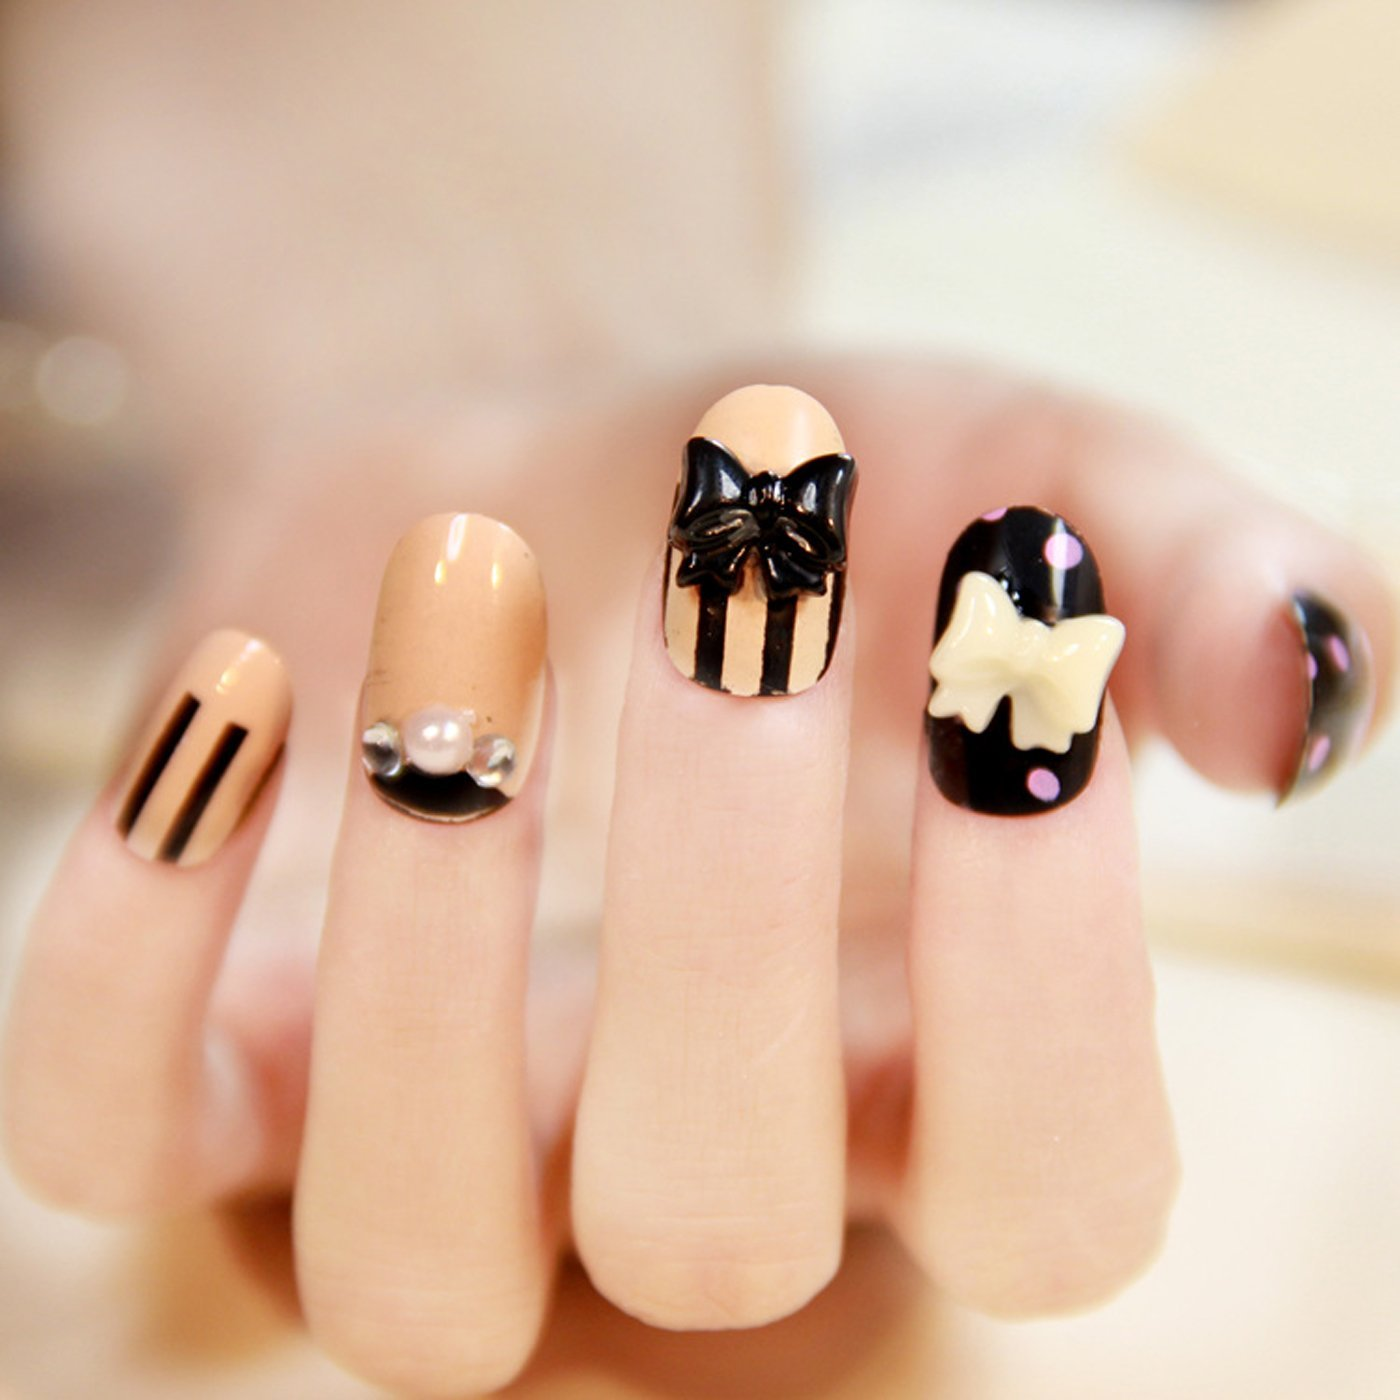 Cheap Japanese Nails Art Find Japanese Nails Art Deals On Line At